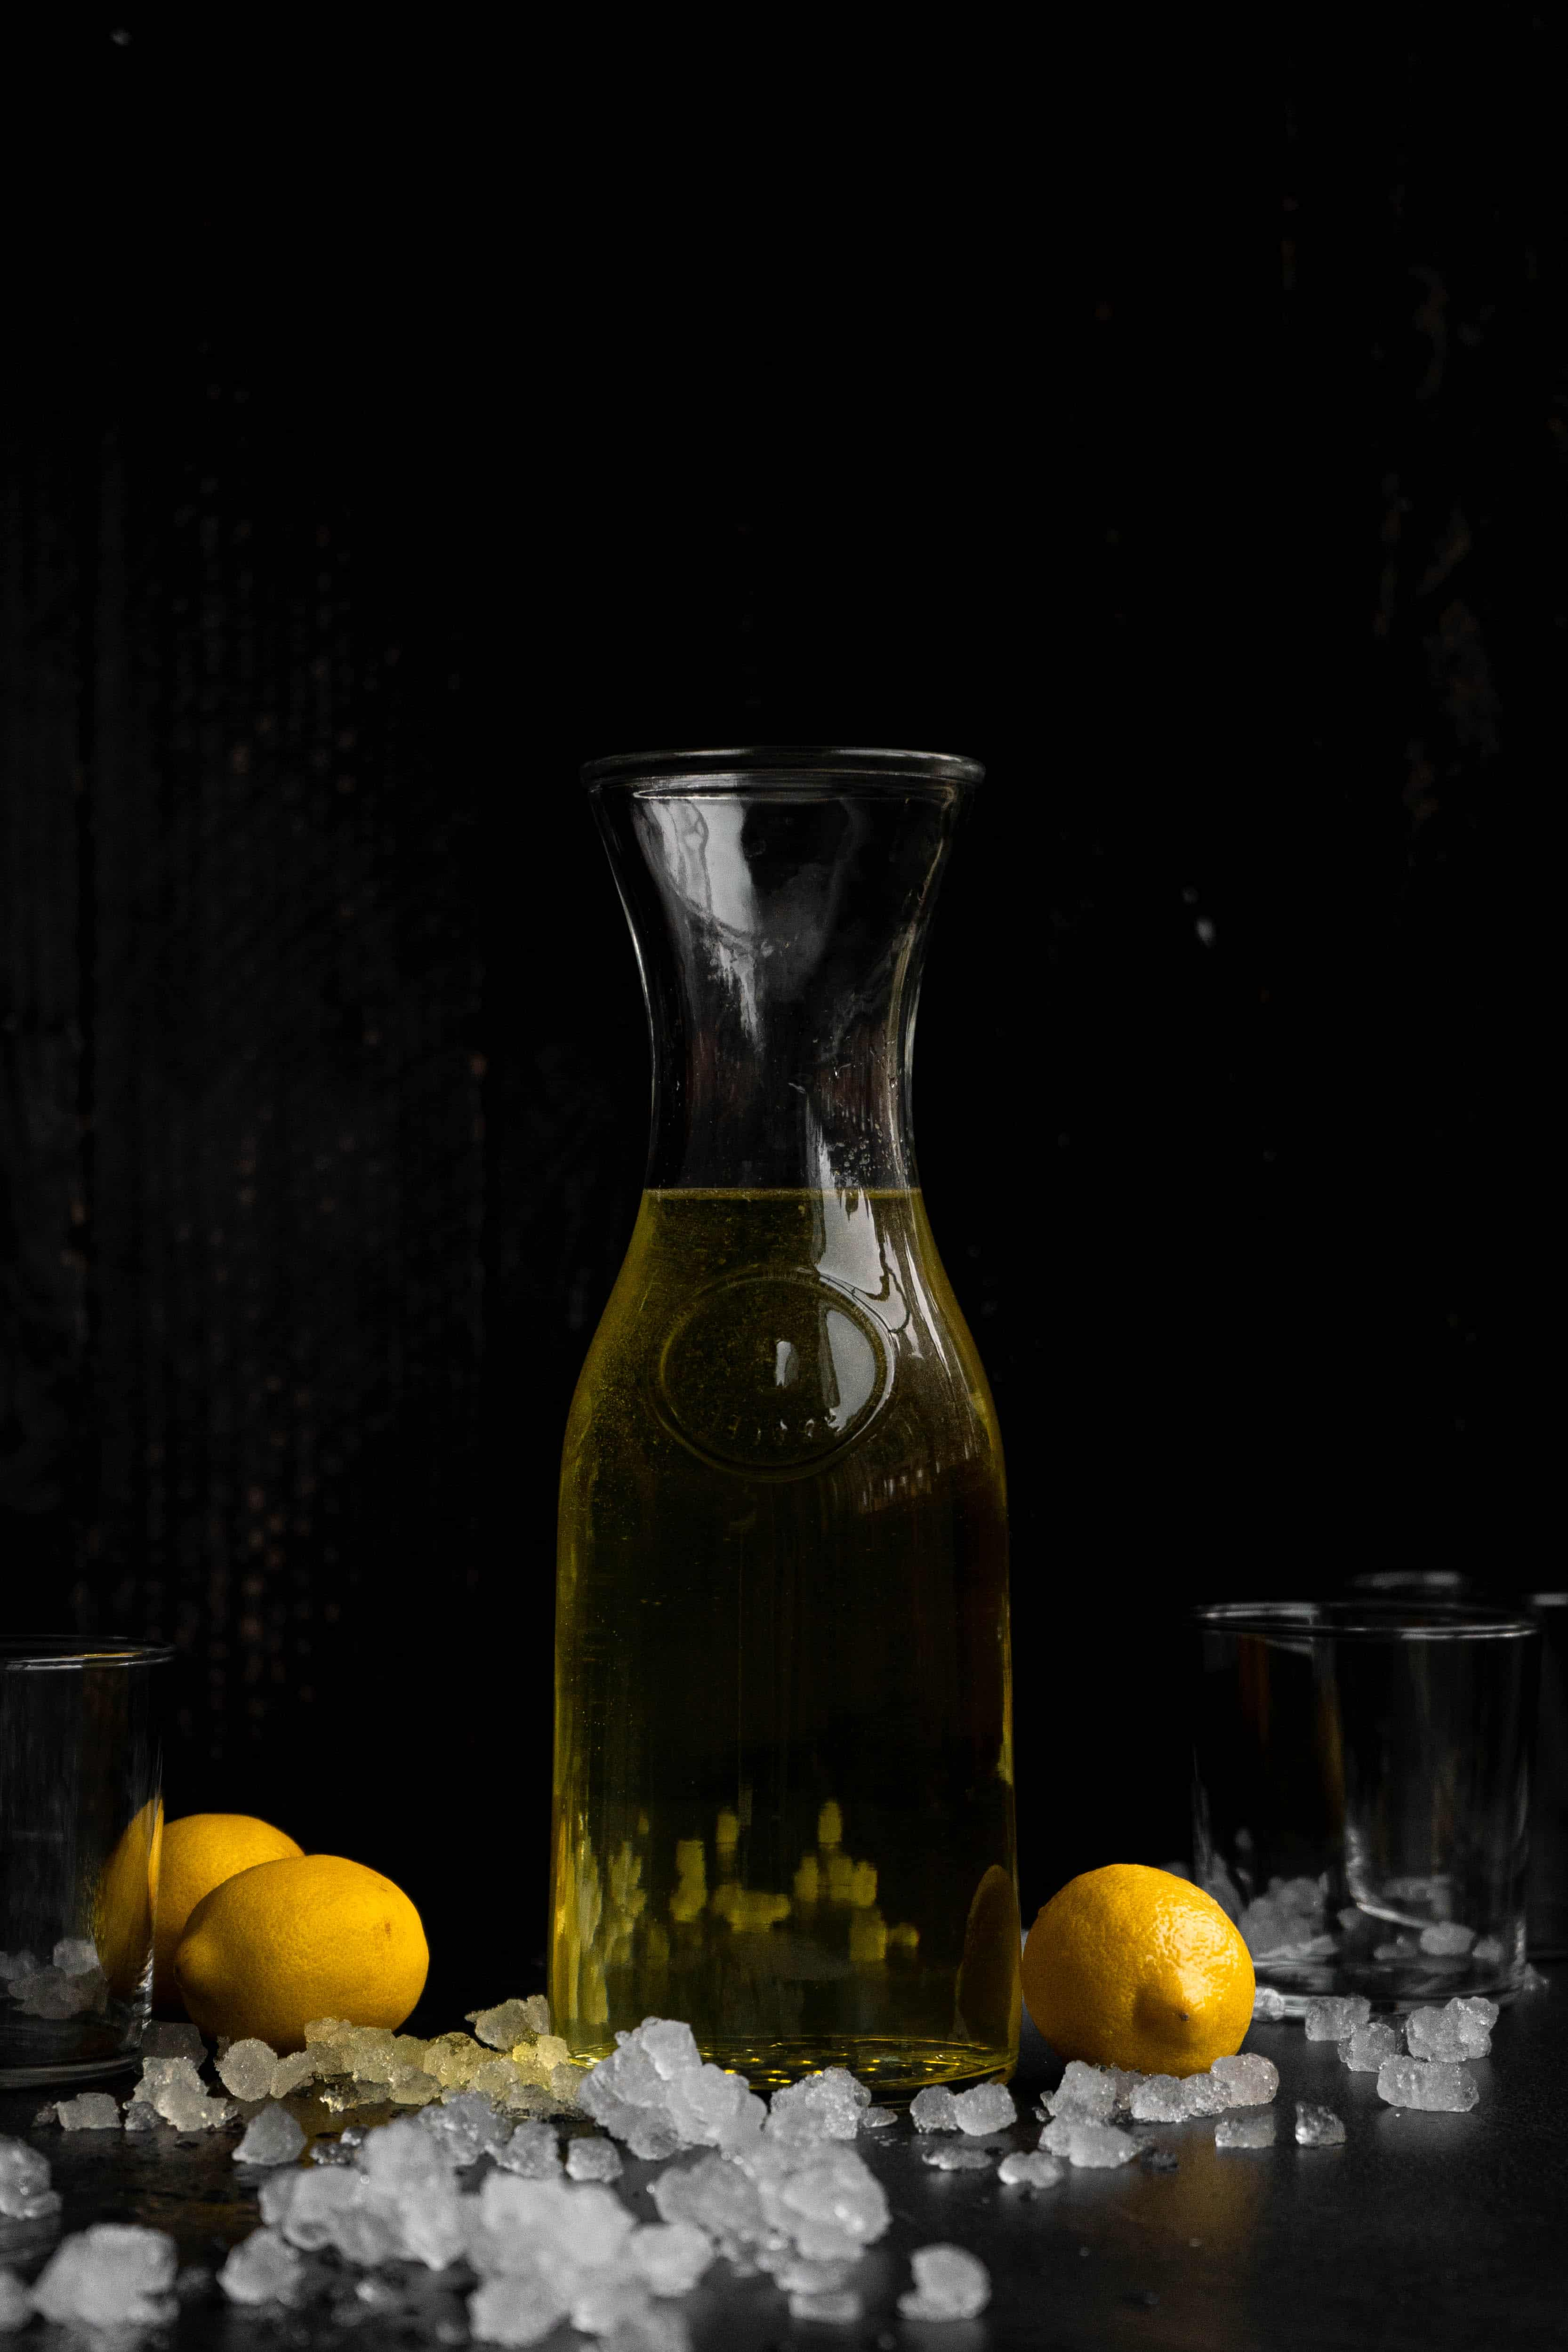 A bottle of limoncello amongst ice and lemons